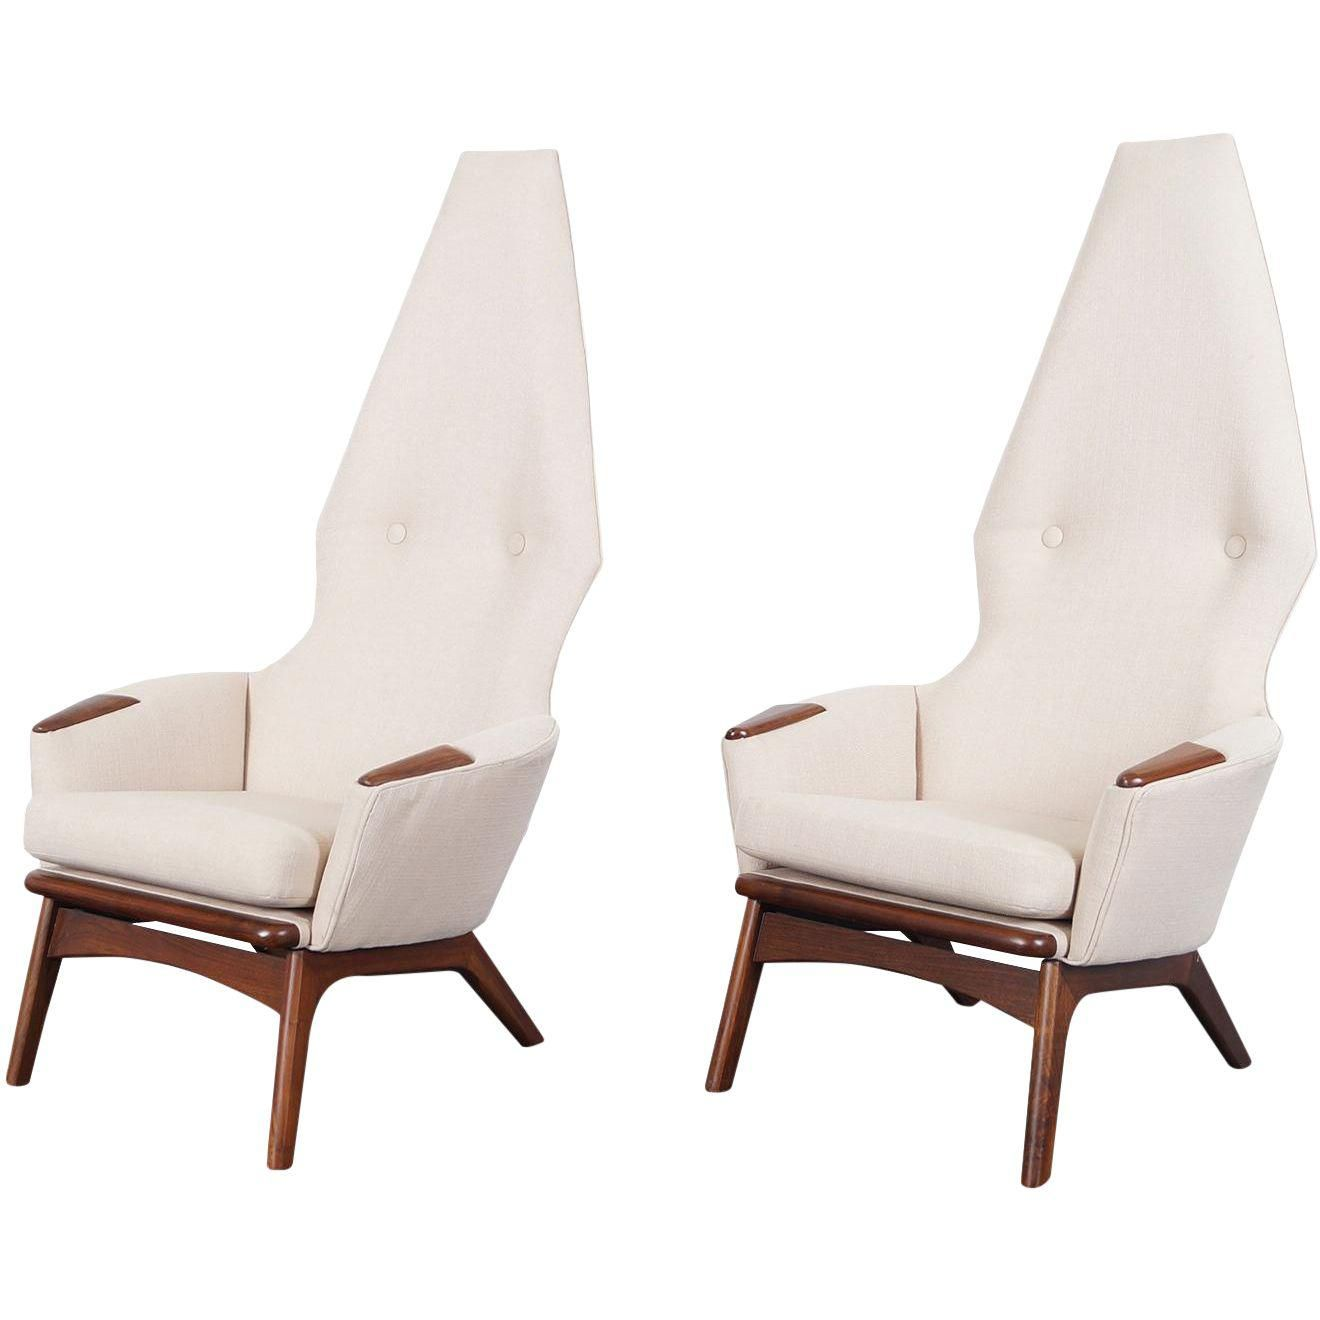 Phenomenal Vintage Adrian Pearsall High Back Lounge Chairs A Pair Camellatalisay Diy Chair Ideas Camellatalisaycom